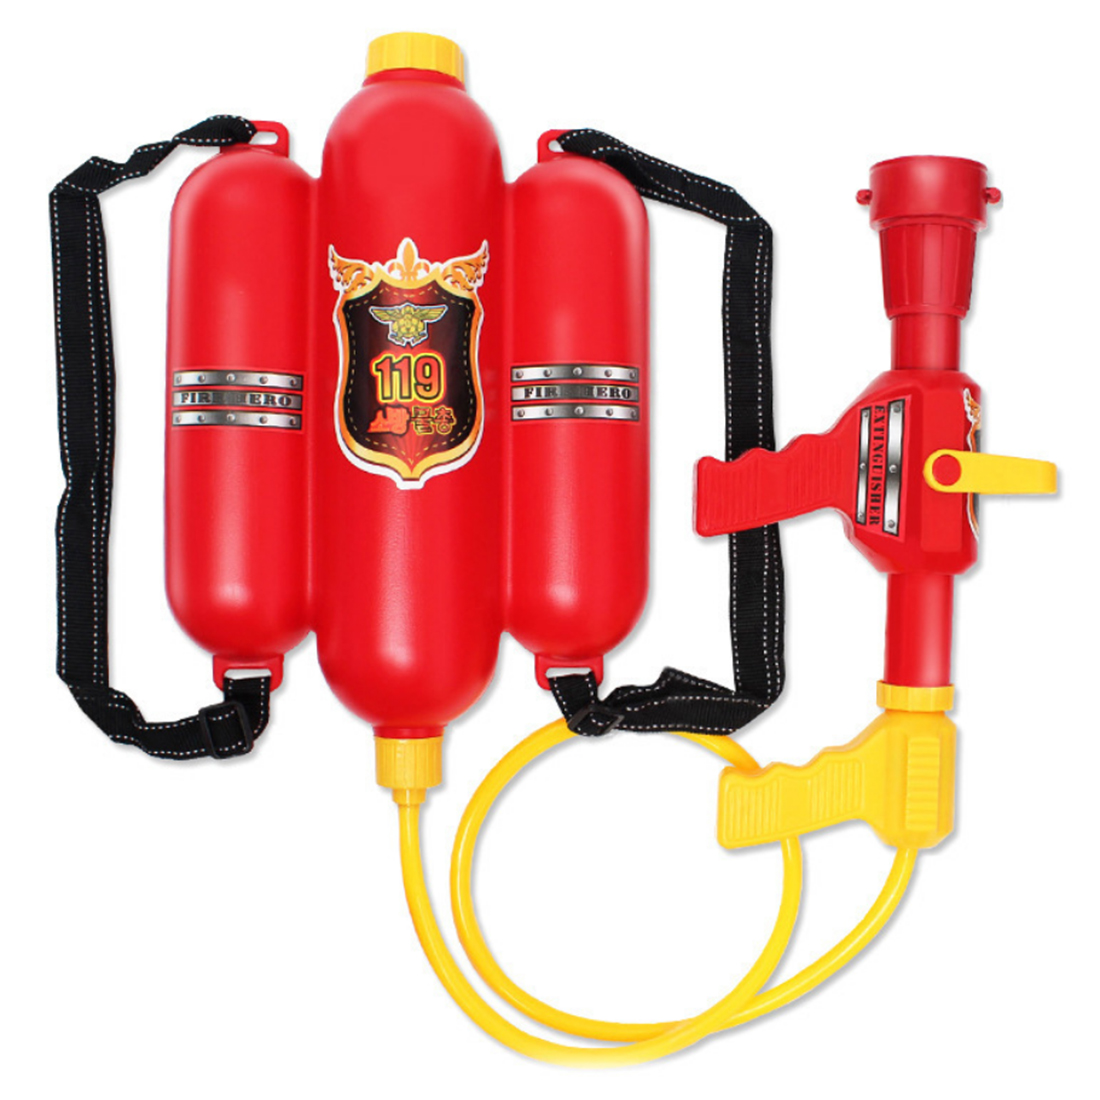 Fire Fighter Backpack Water Pistols Shooter Summer Water Blaster Toy For Children Kids Outdoor Lawn Summer Game Water Gun Toys